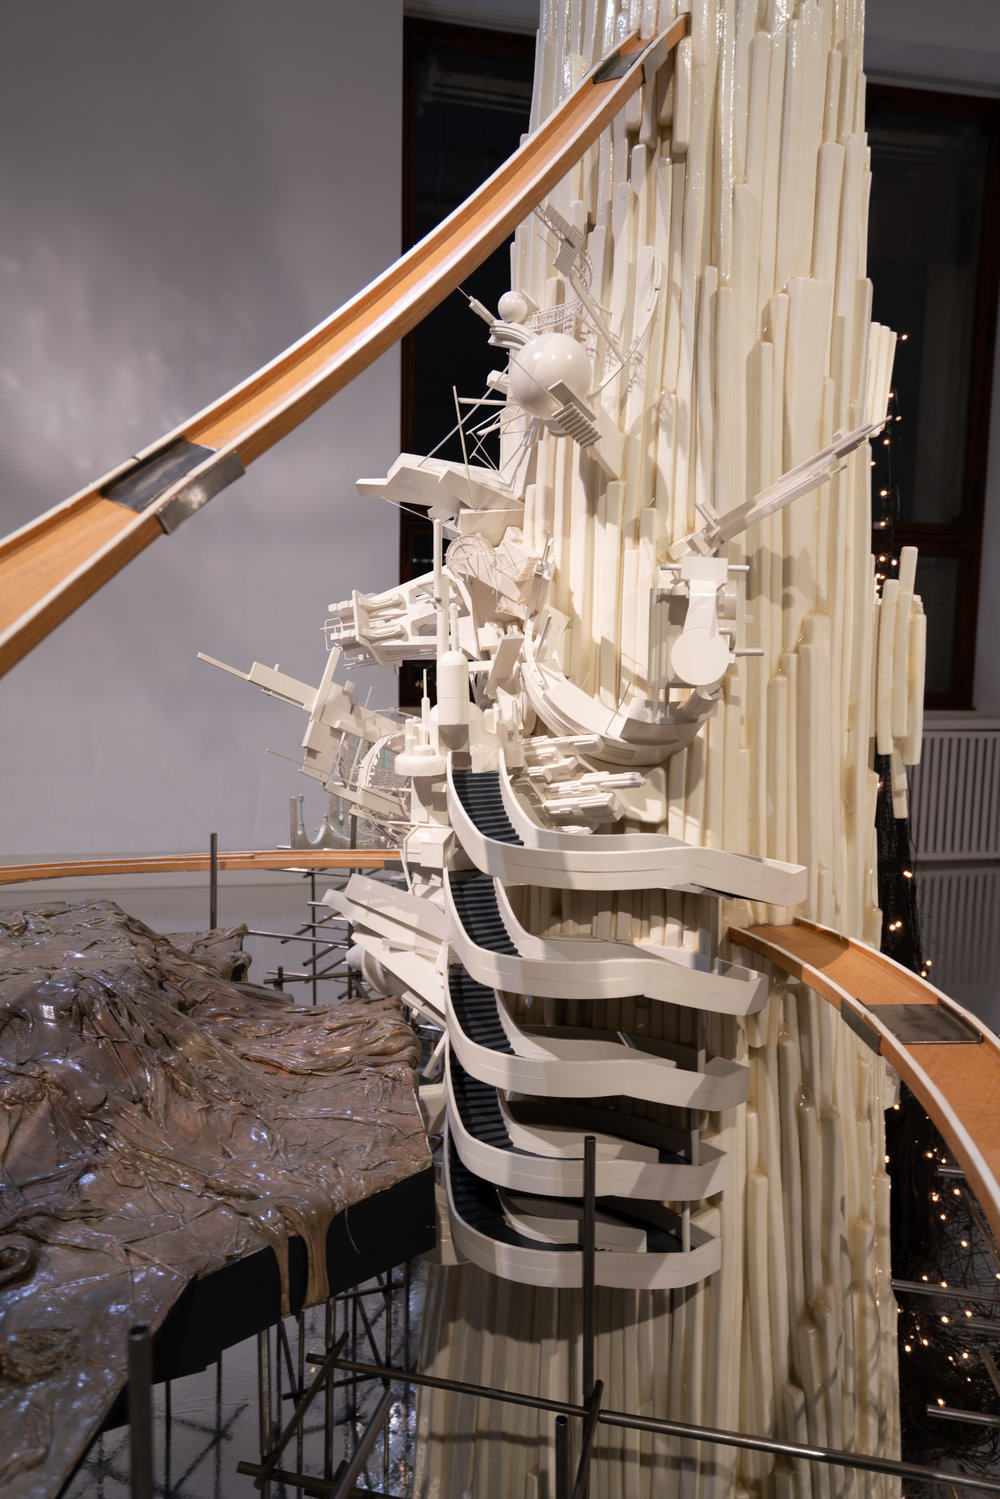 181117_Lee Bul_Crash, Martin-Gropius-Bau_08.jpg